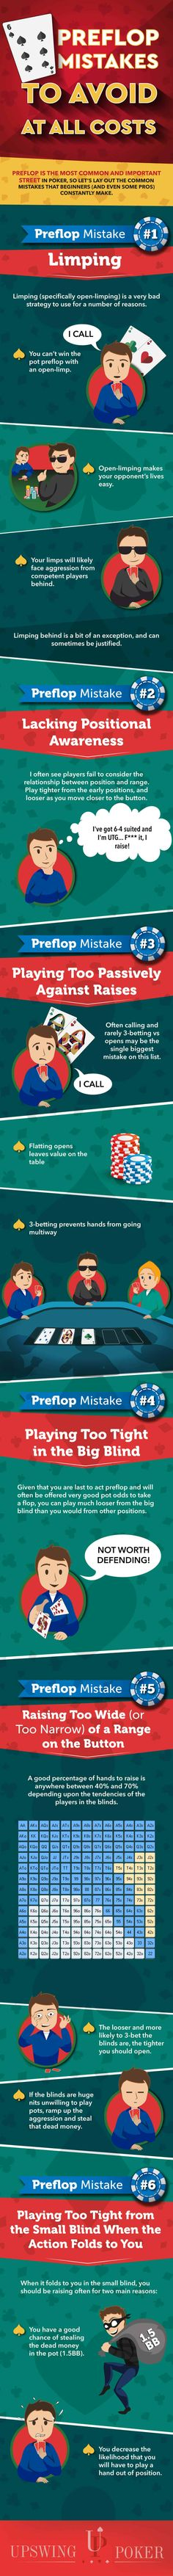 Pre-flop Poker Mistakes Infographic #poker #strategy